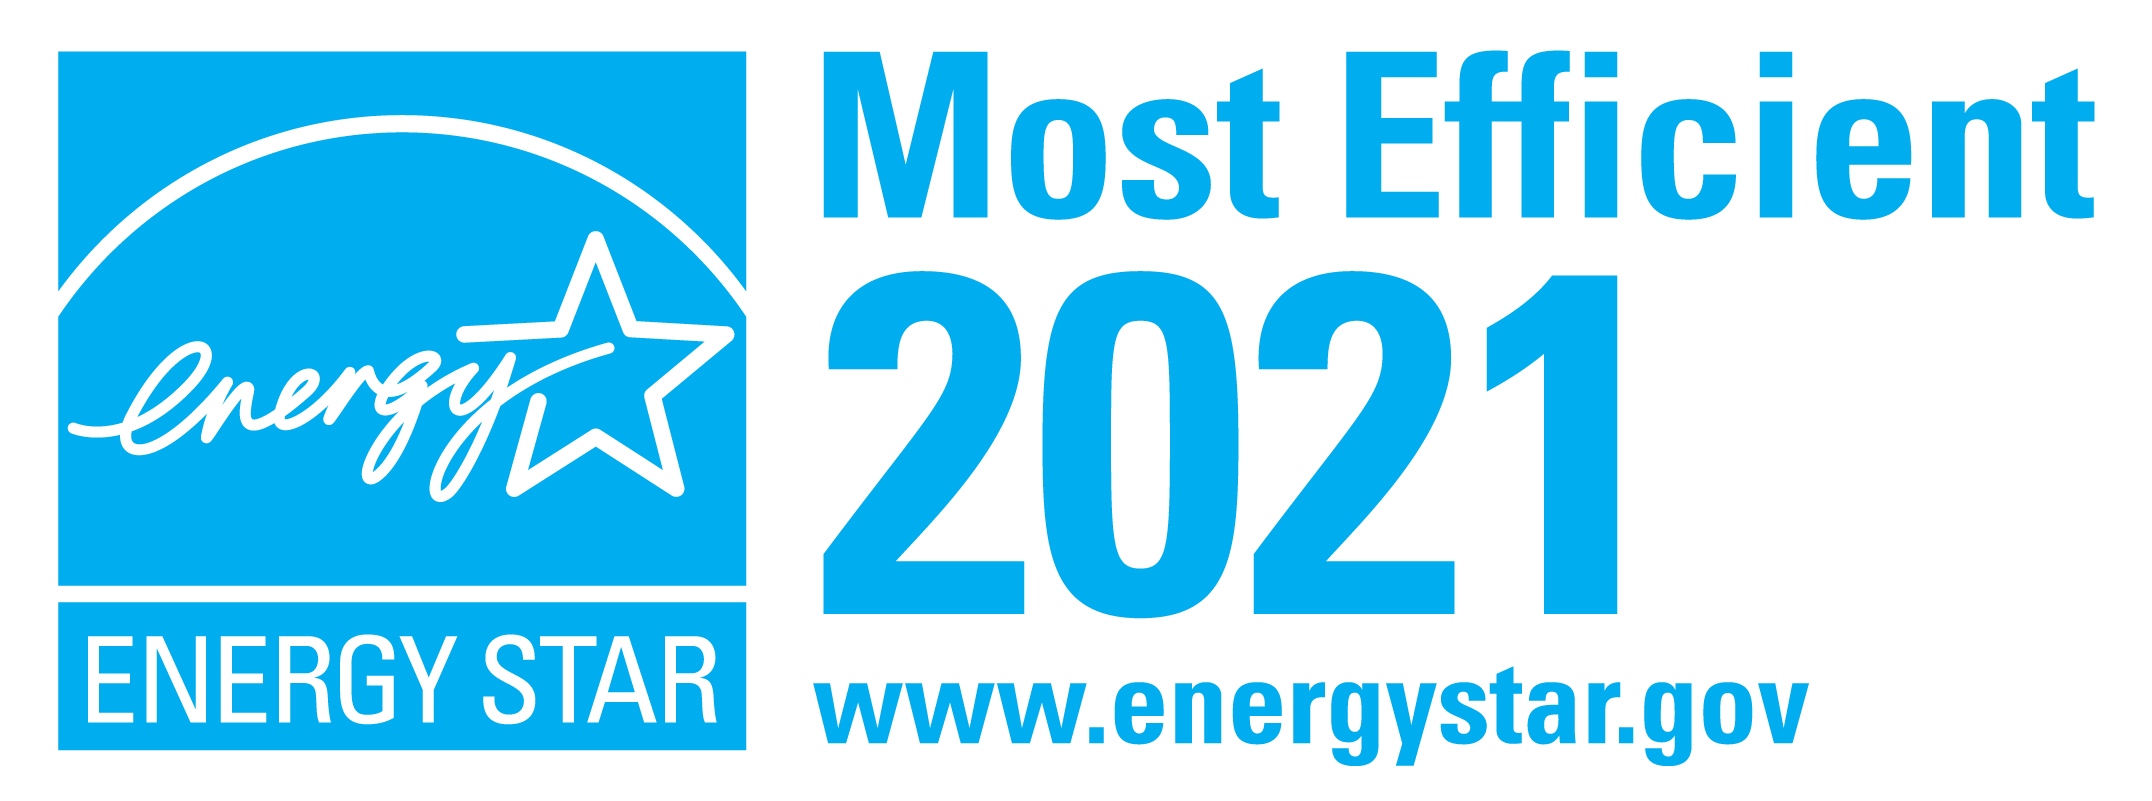 ENERGY STAR Most Efficient in 2021